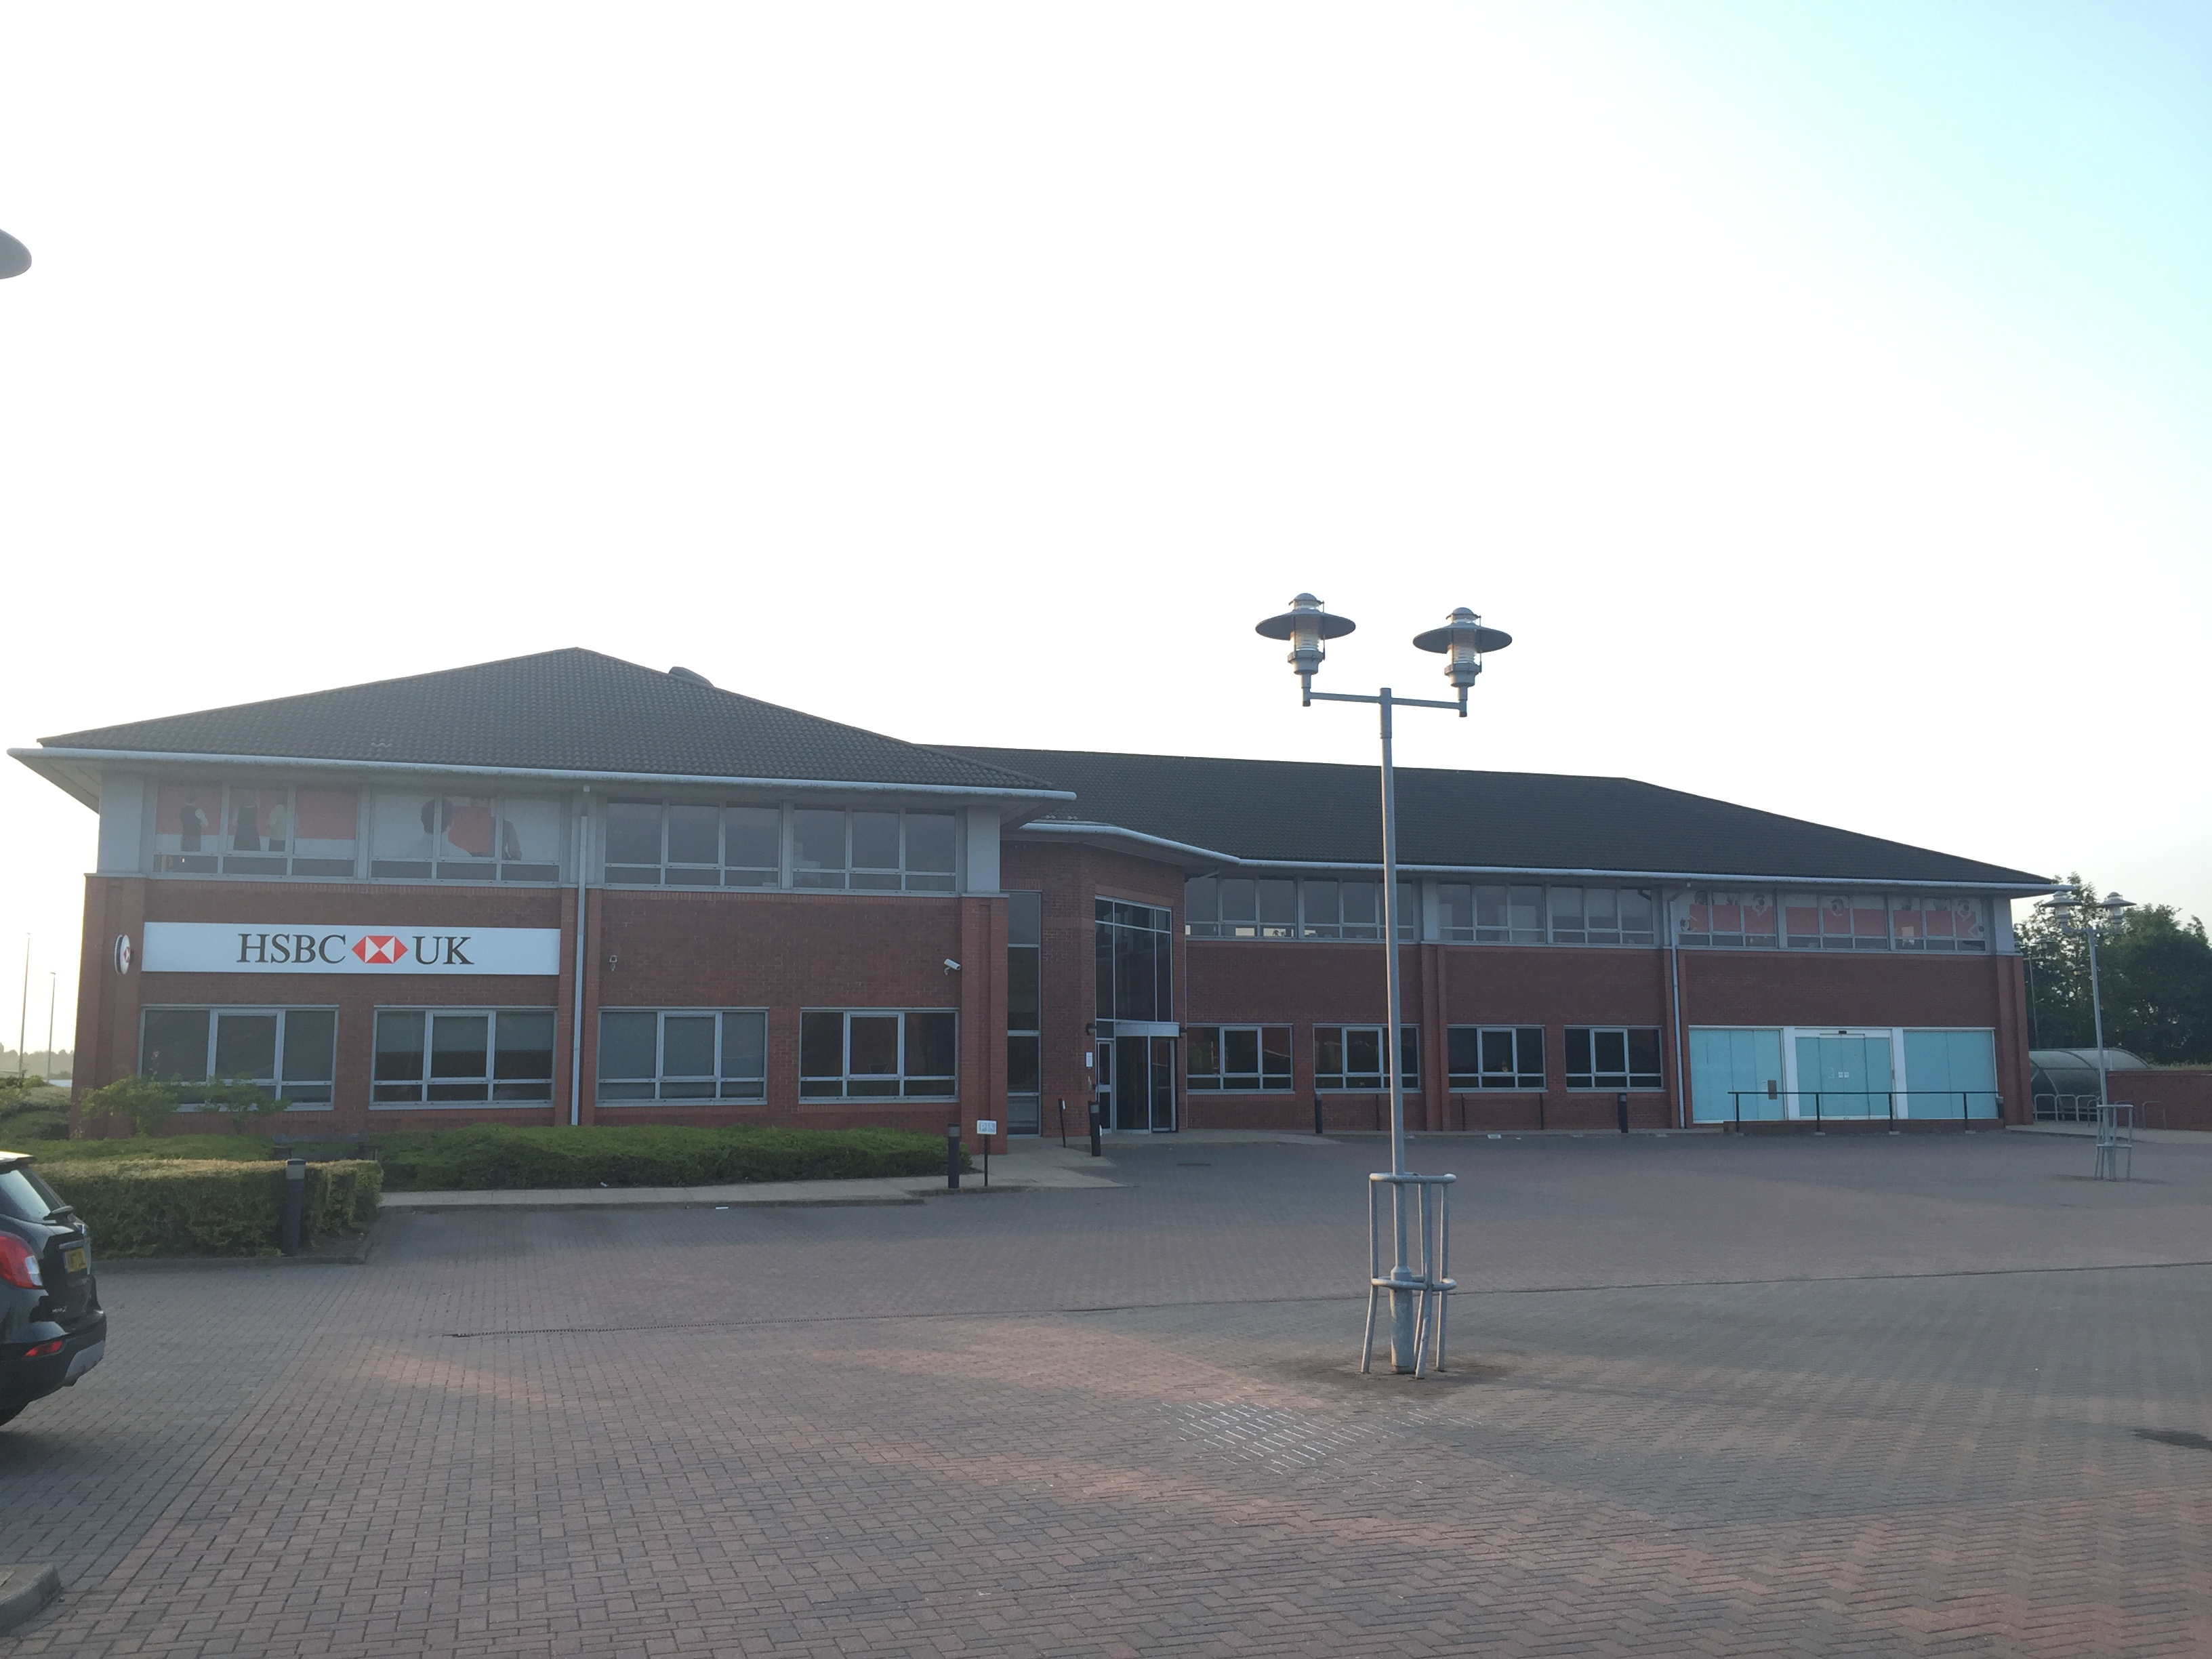 Phillips Sutton instructed to market former HSBC office on Grove Park, Leicester